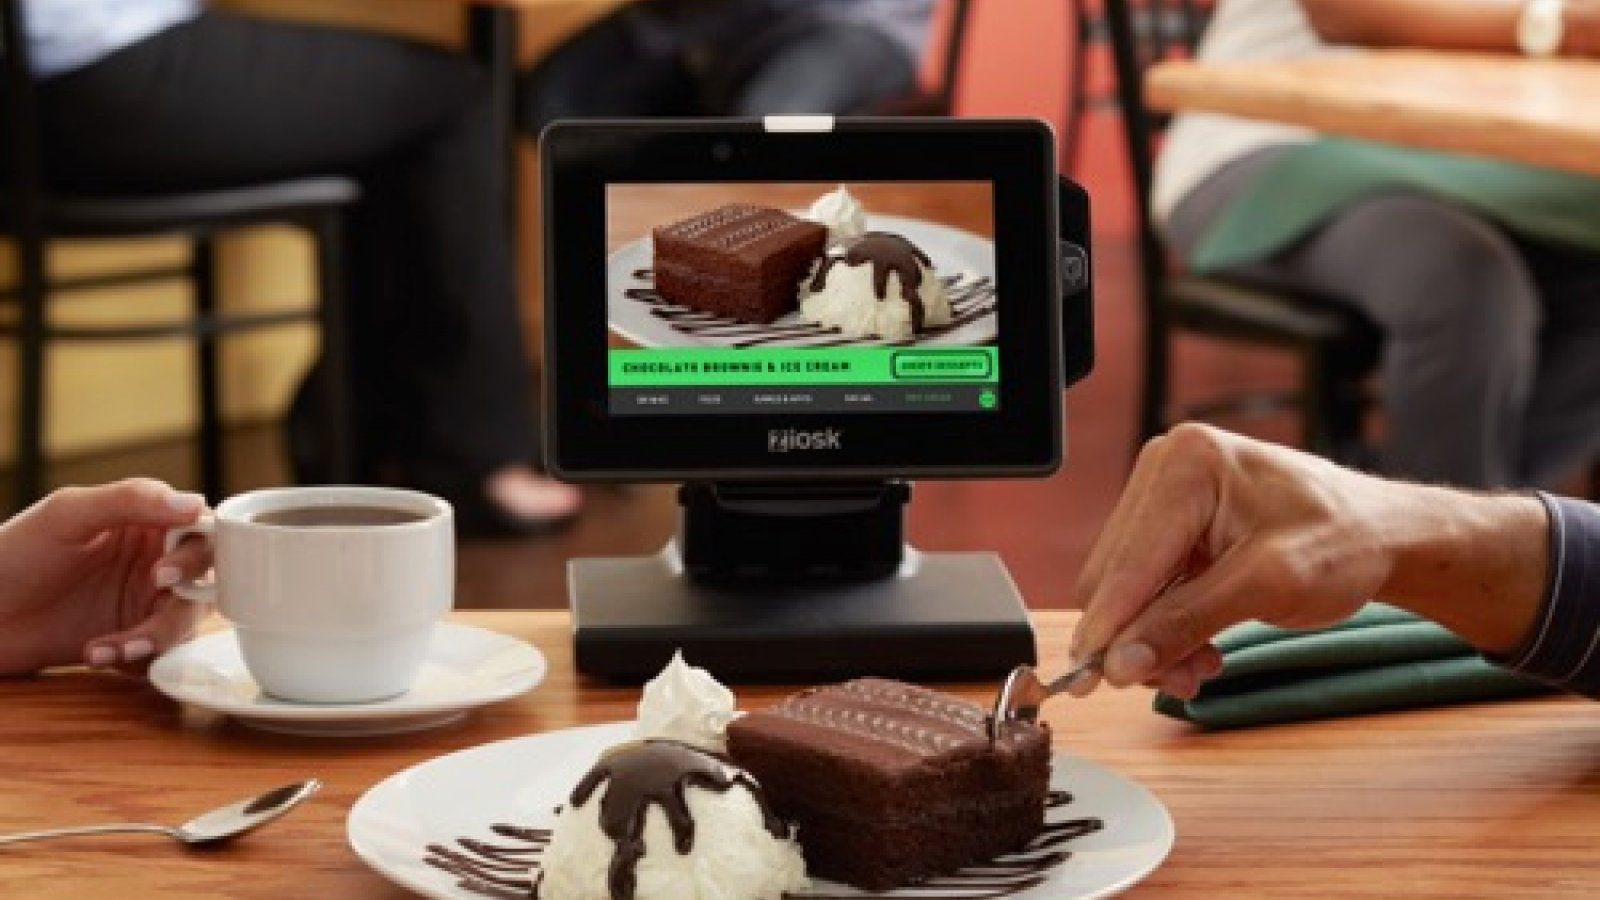 Food on the tablet